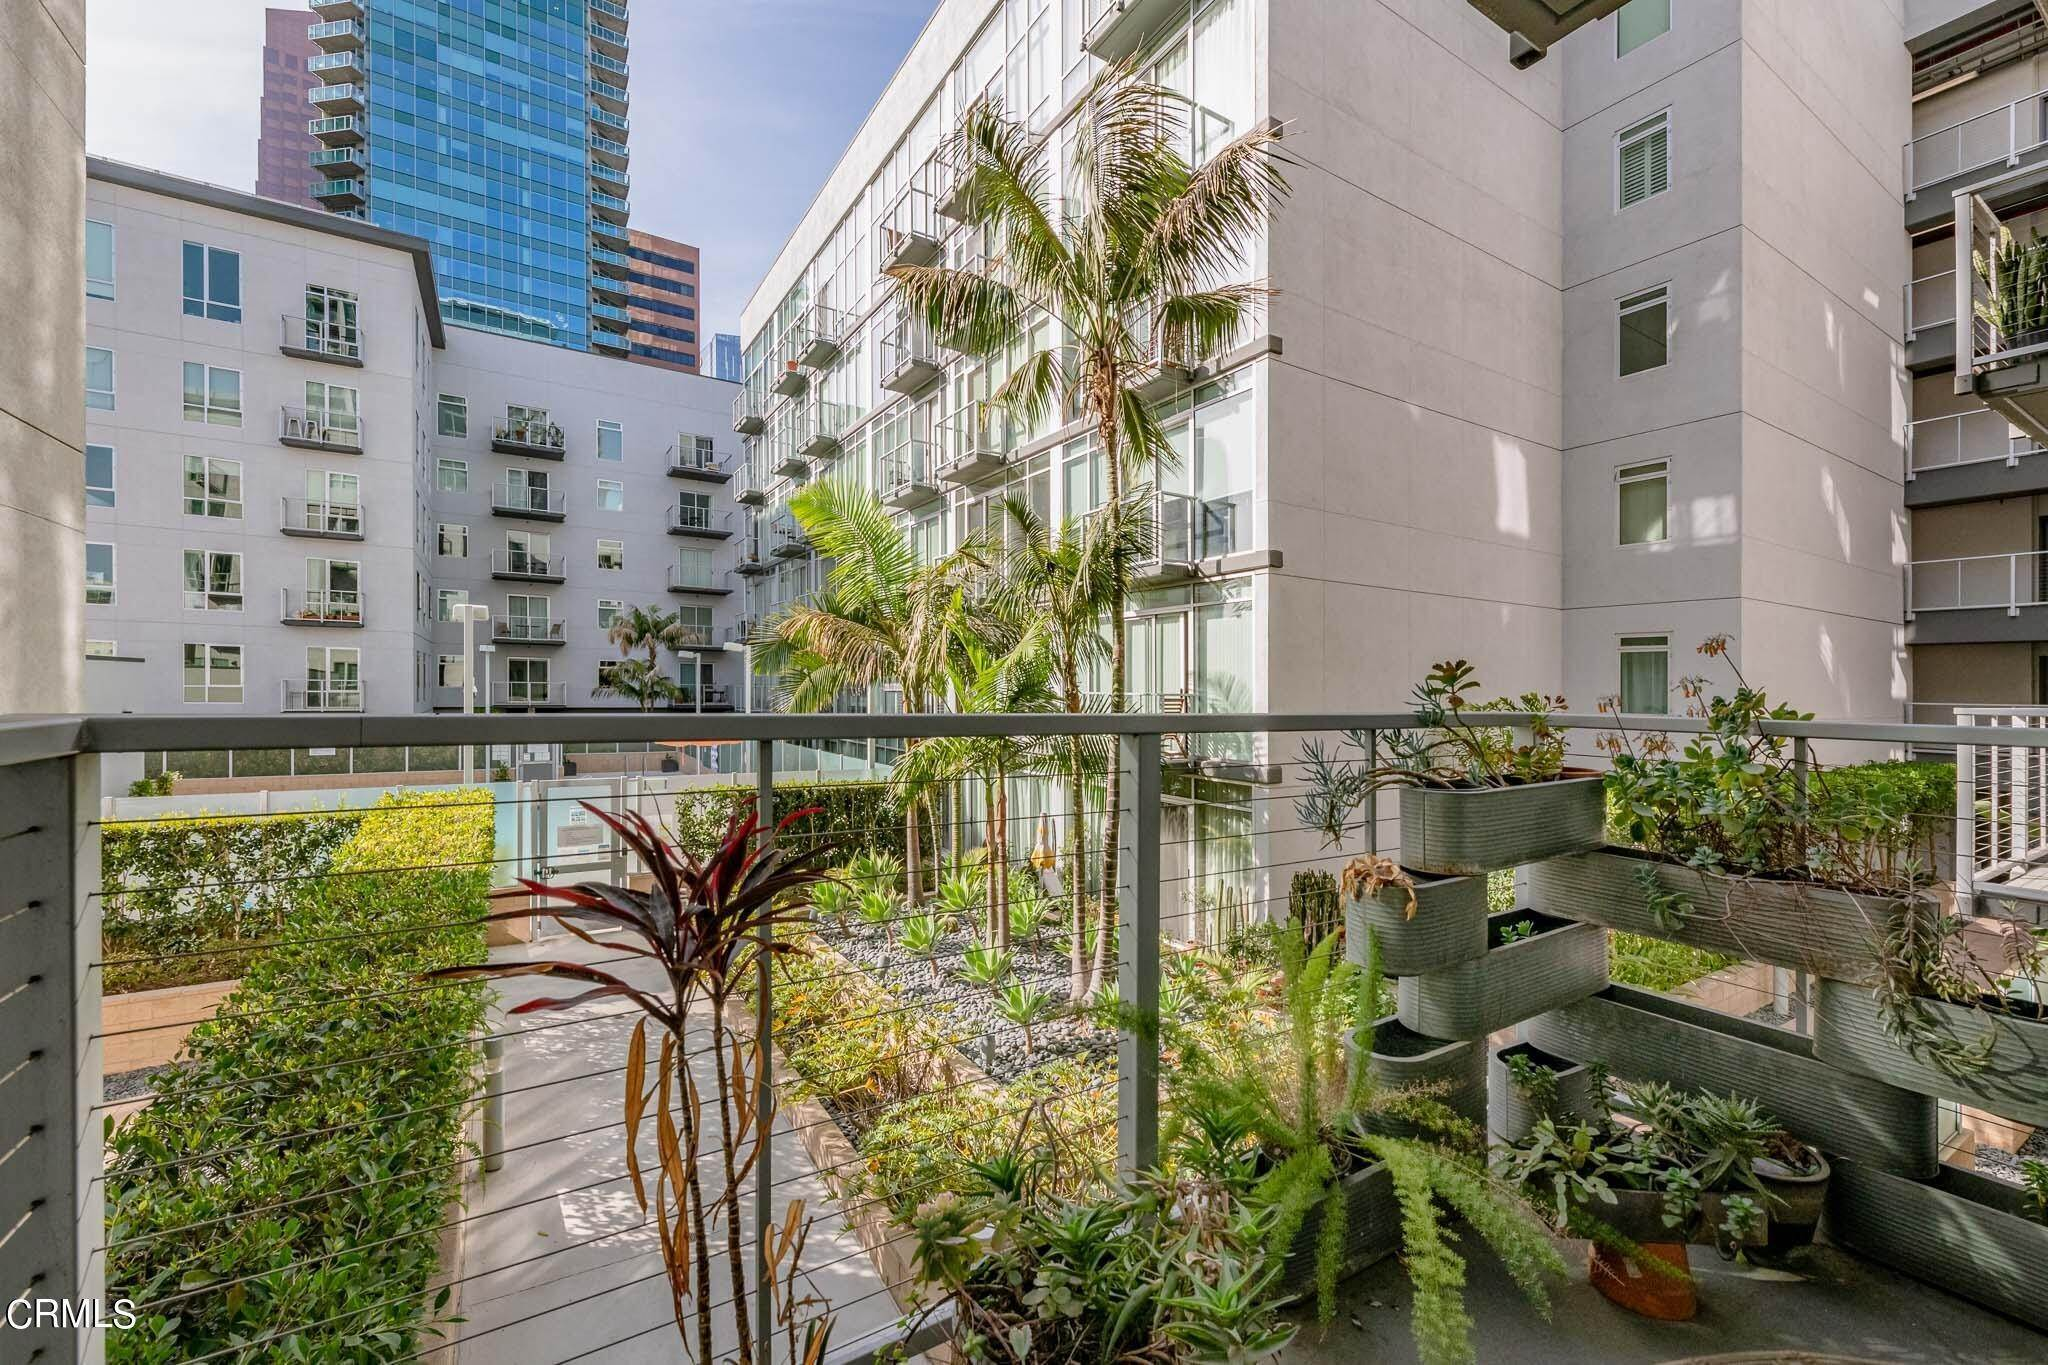 14. Condominiums for Sale at 645 West 9th Street 332 #332 645 West 9th Street 332 Los Angeles, California 90015 United States